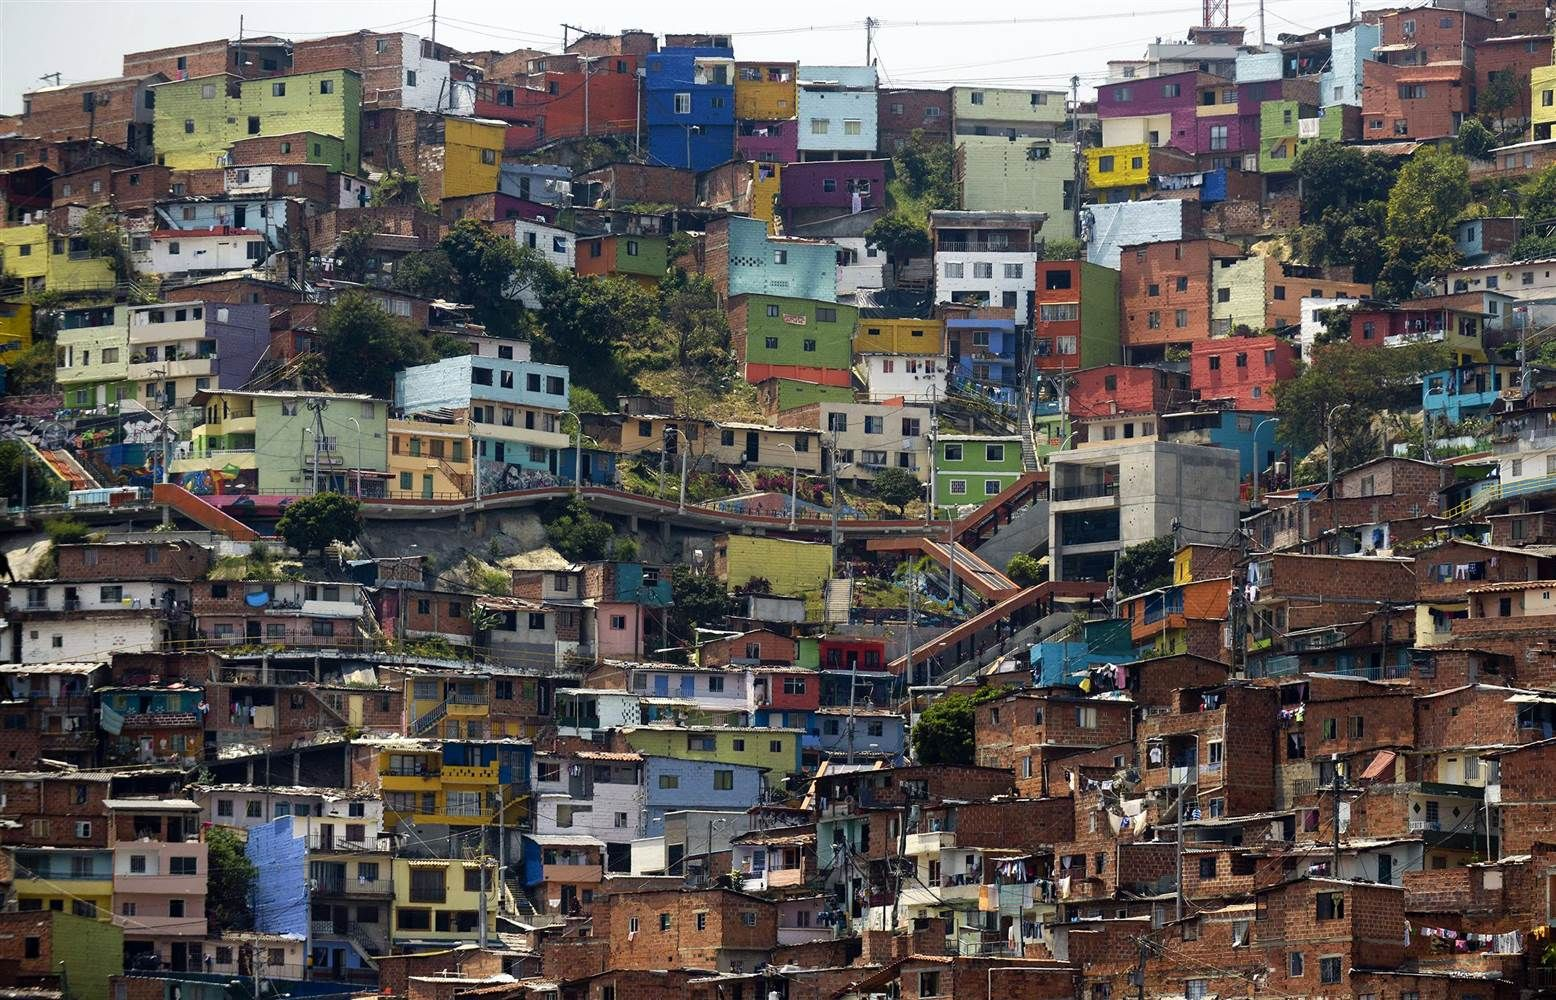 Medellins Comuna Shows Off Murals Ahead Of World Urban Forum - Poorest place in the world